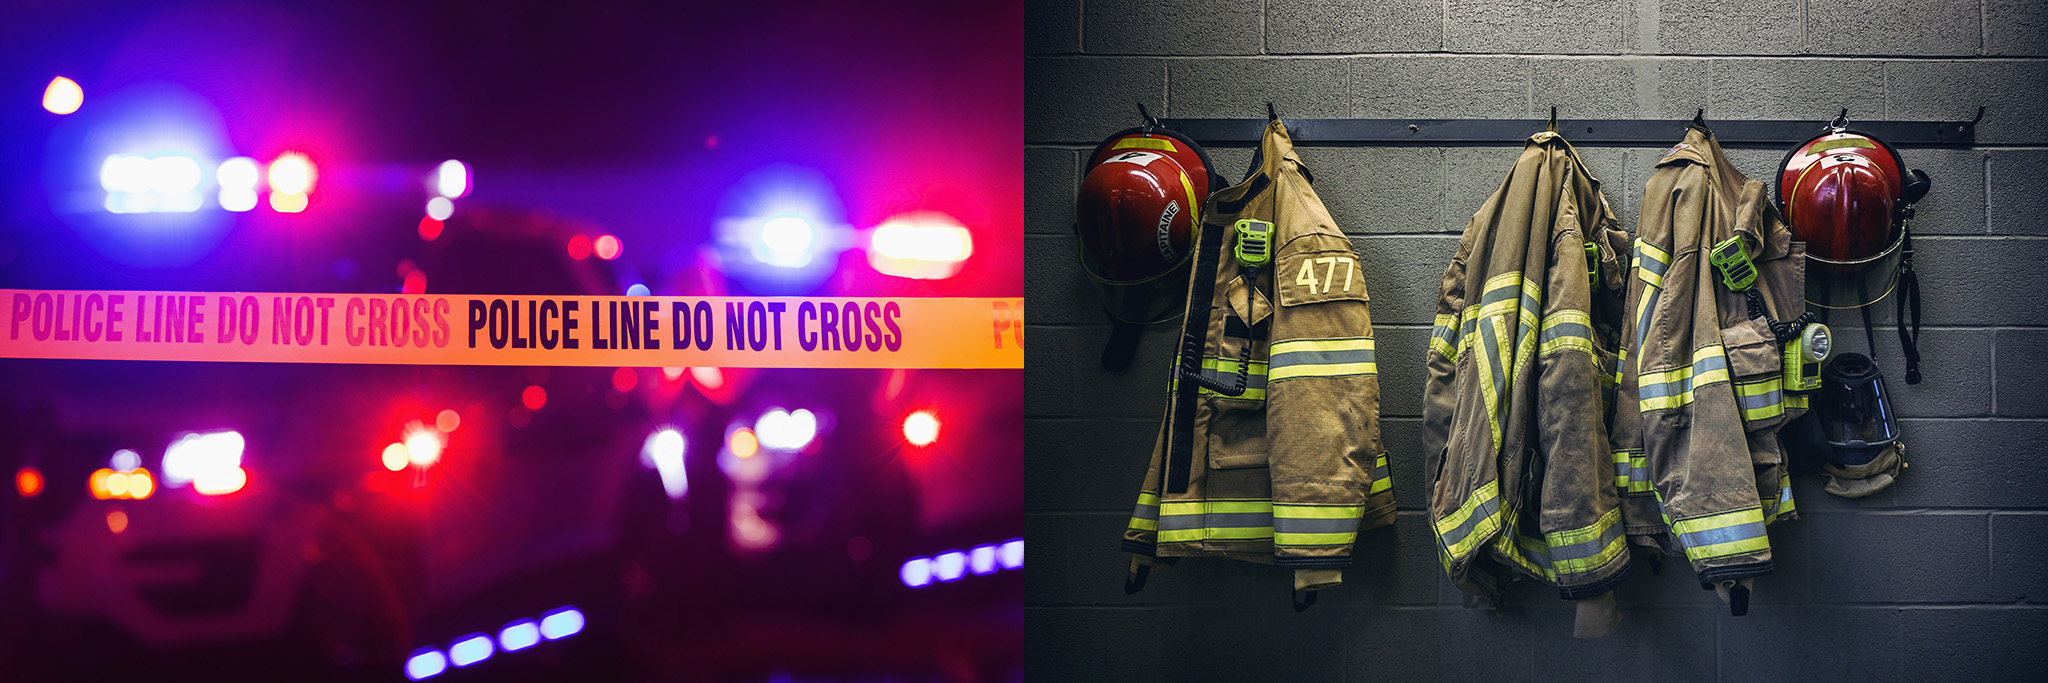 Firefighter jackets and police line